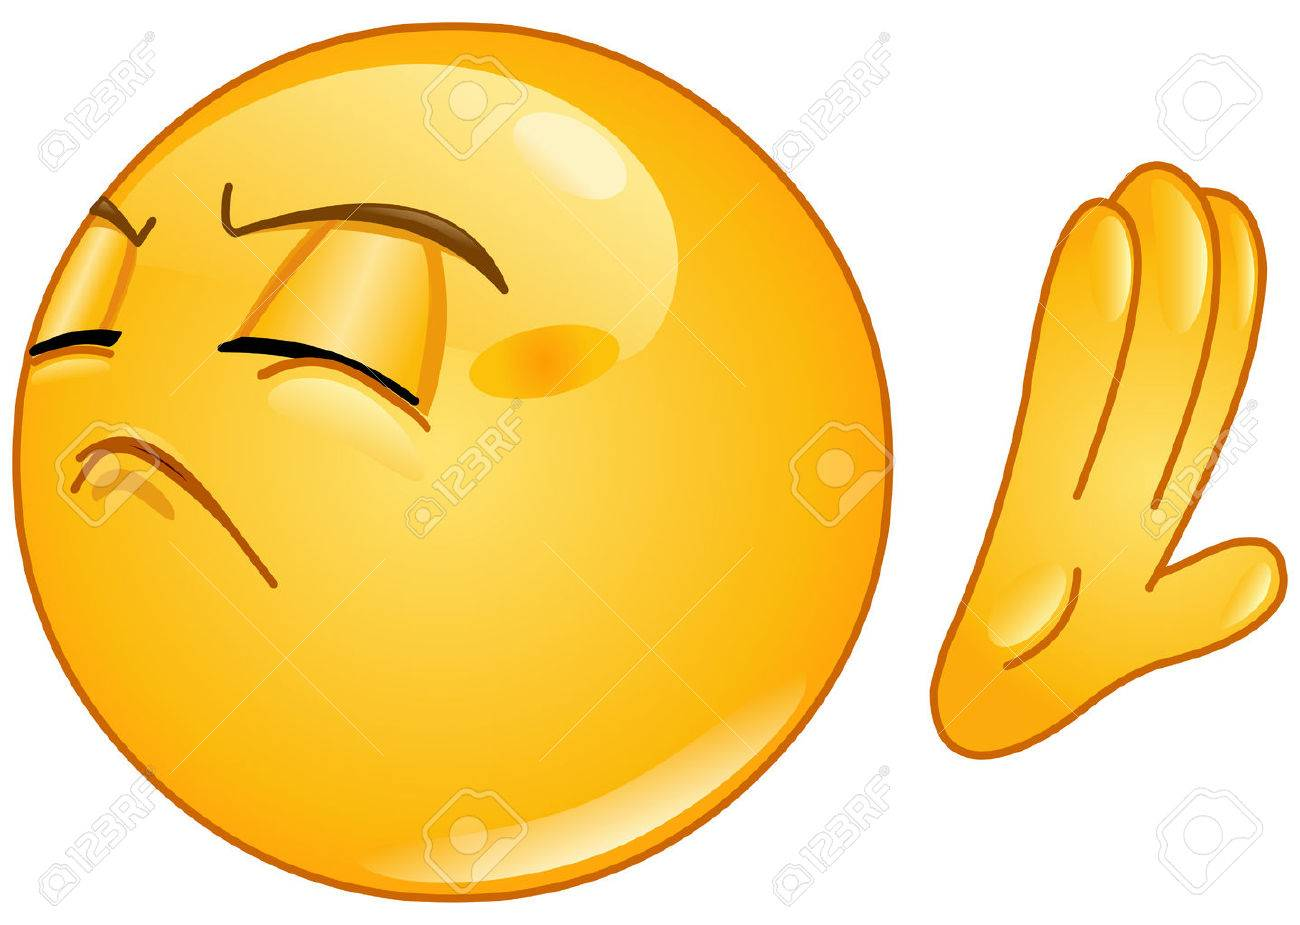 emoticon making deny sign royalty free cliparts vectors and stock